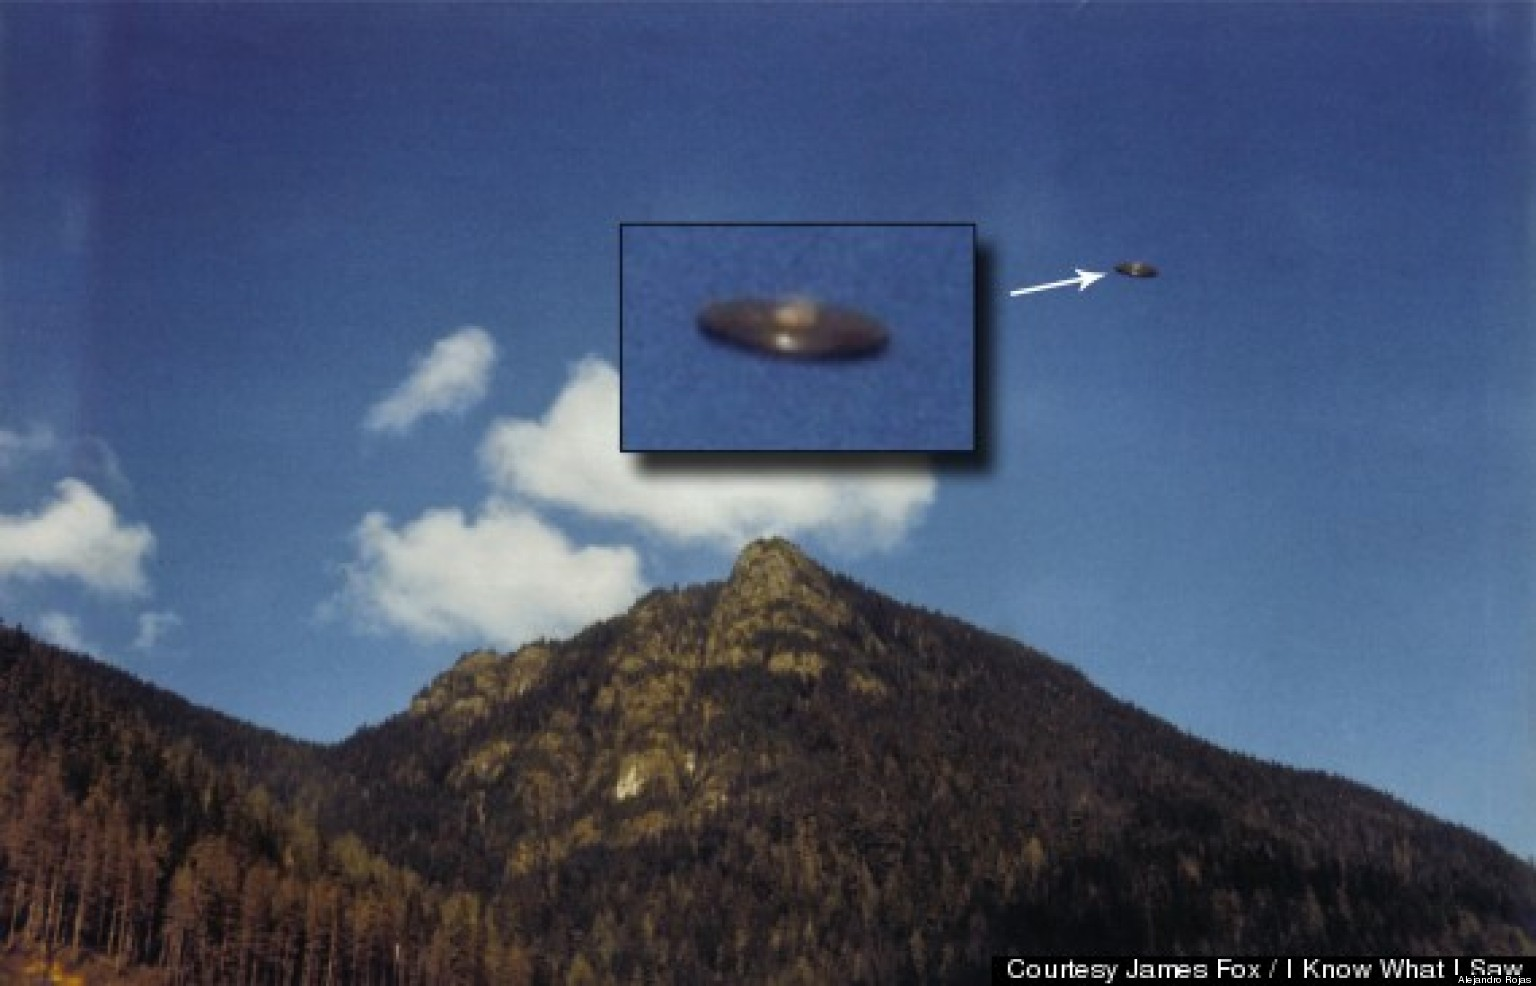 Alien Photo: James Fox To Announce $100,000 UFO Reward For Proof Of An